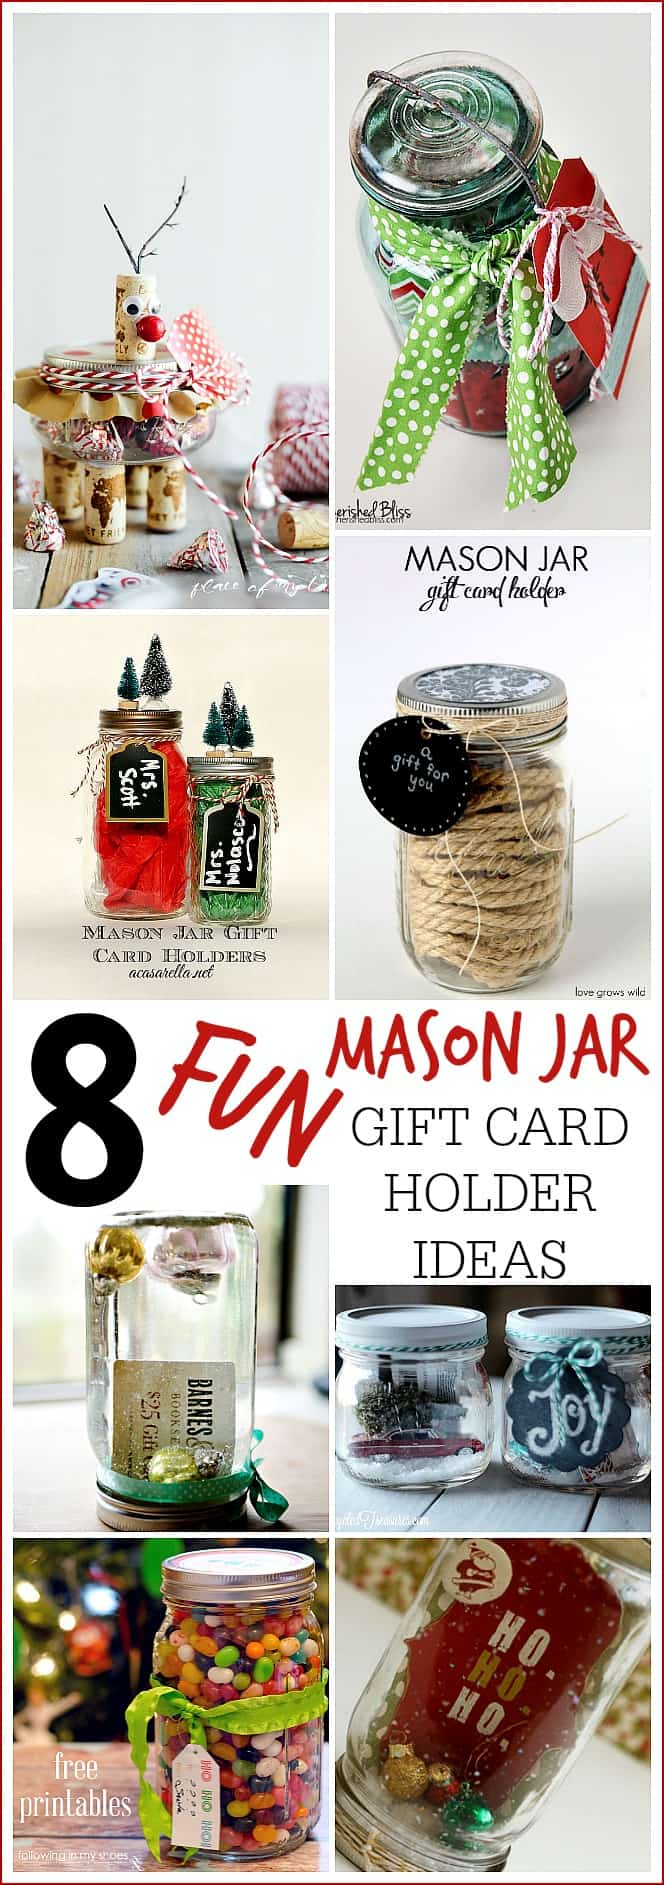 8 FUN MASON JAR GIFT CARD HOLDER IDEAS- Placeofmytaste.com